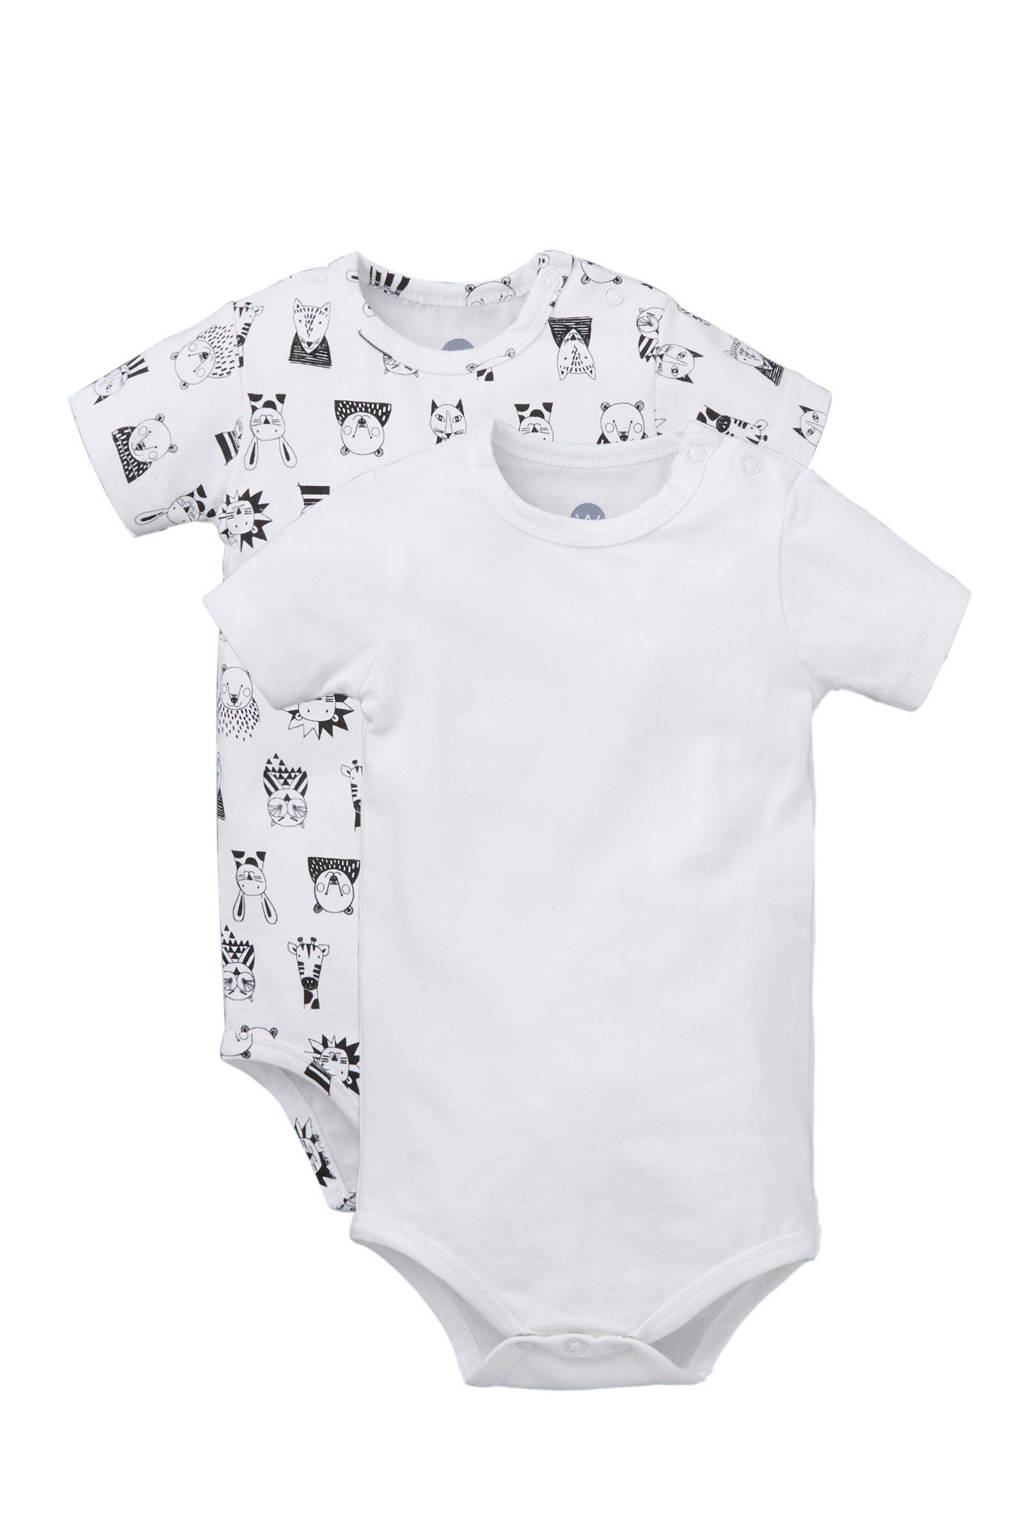 whkmp's own beasty newborn baby rompers - set van 2, wit/ zwart